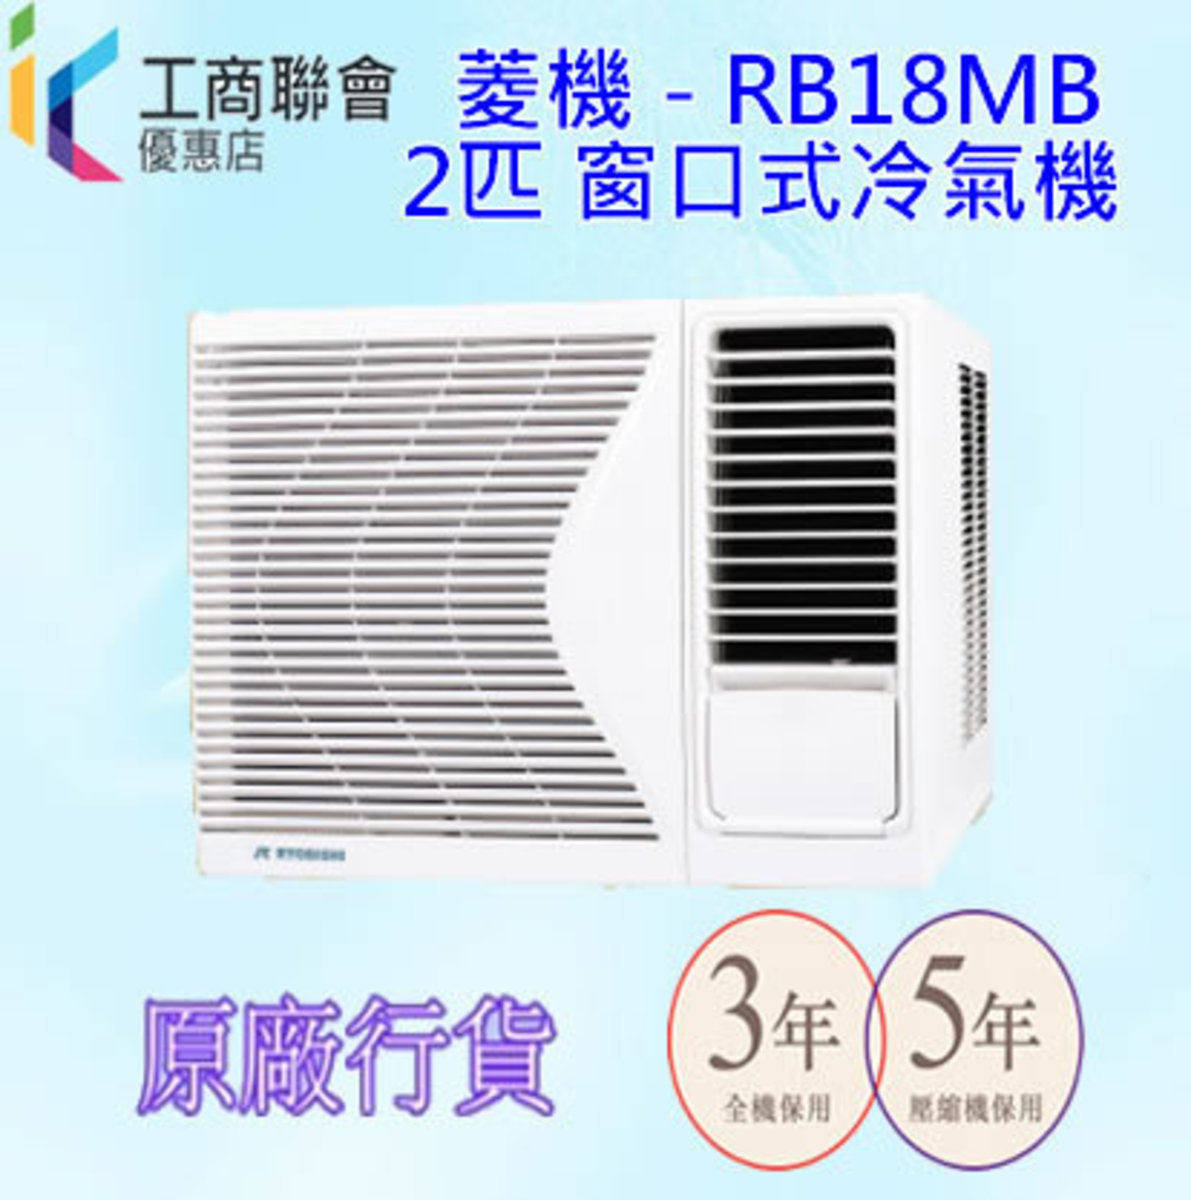 RB18MB 2 HP Window Air Conditioner (Free removal service)